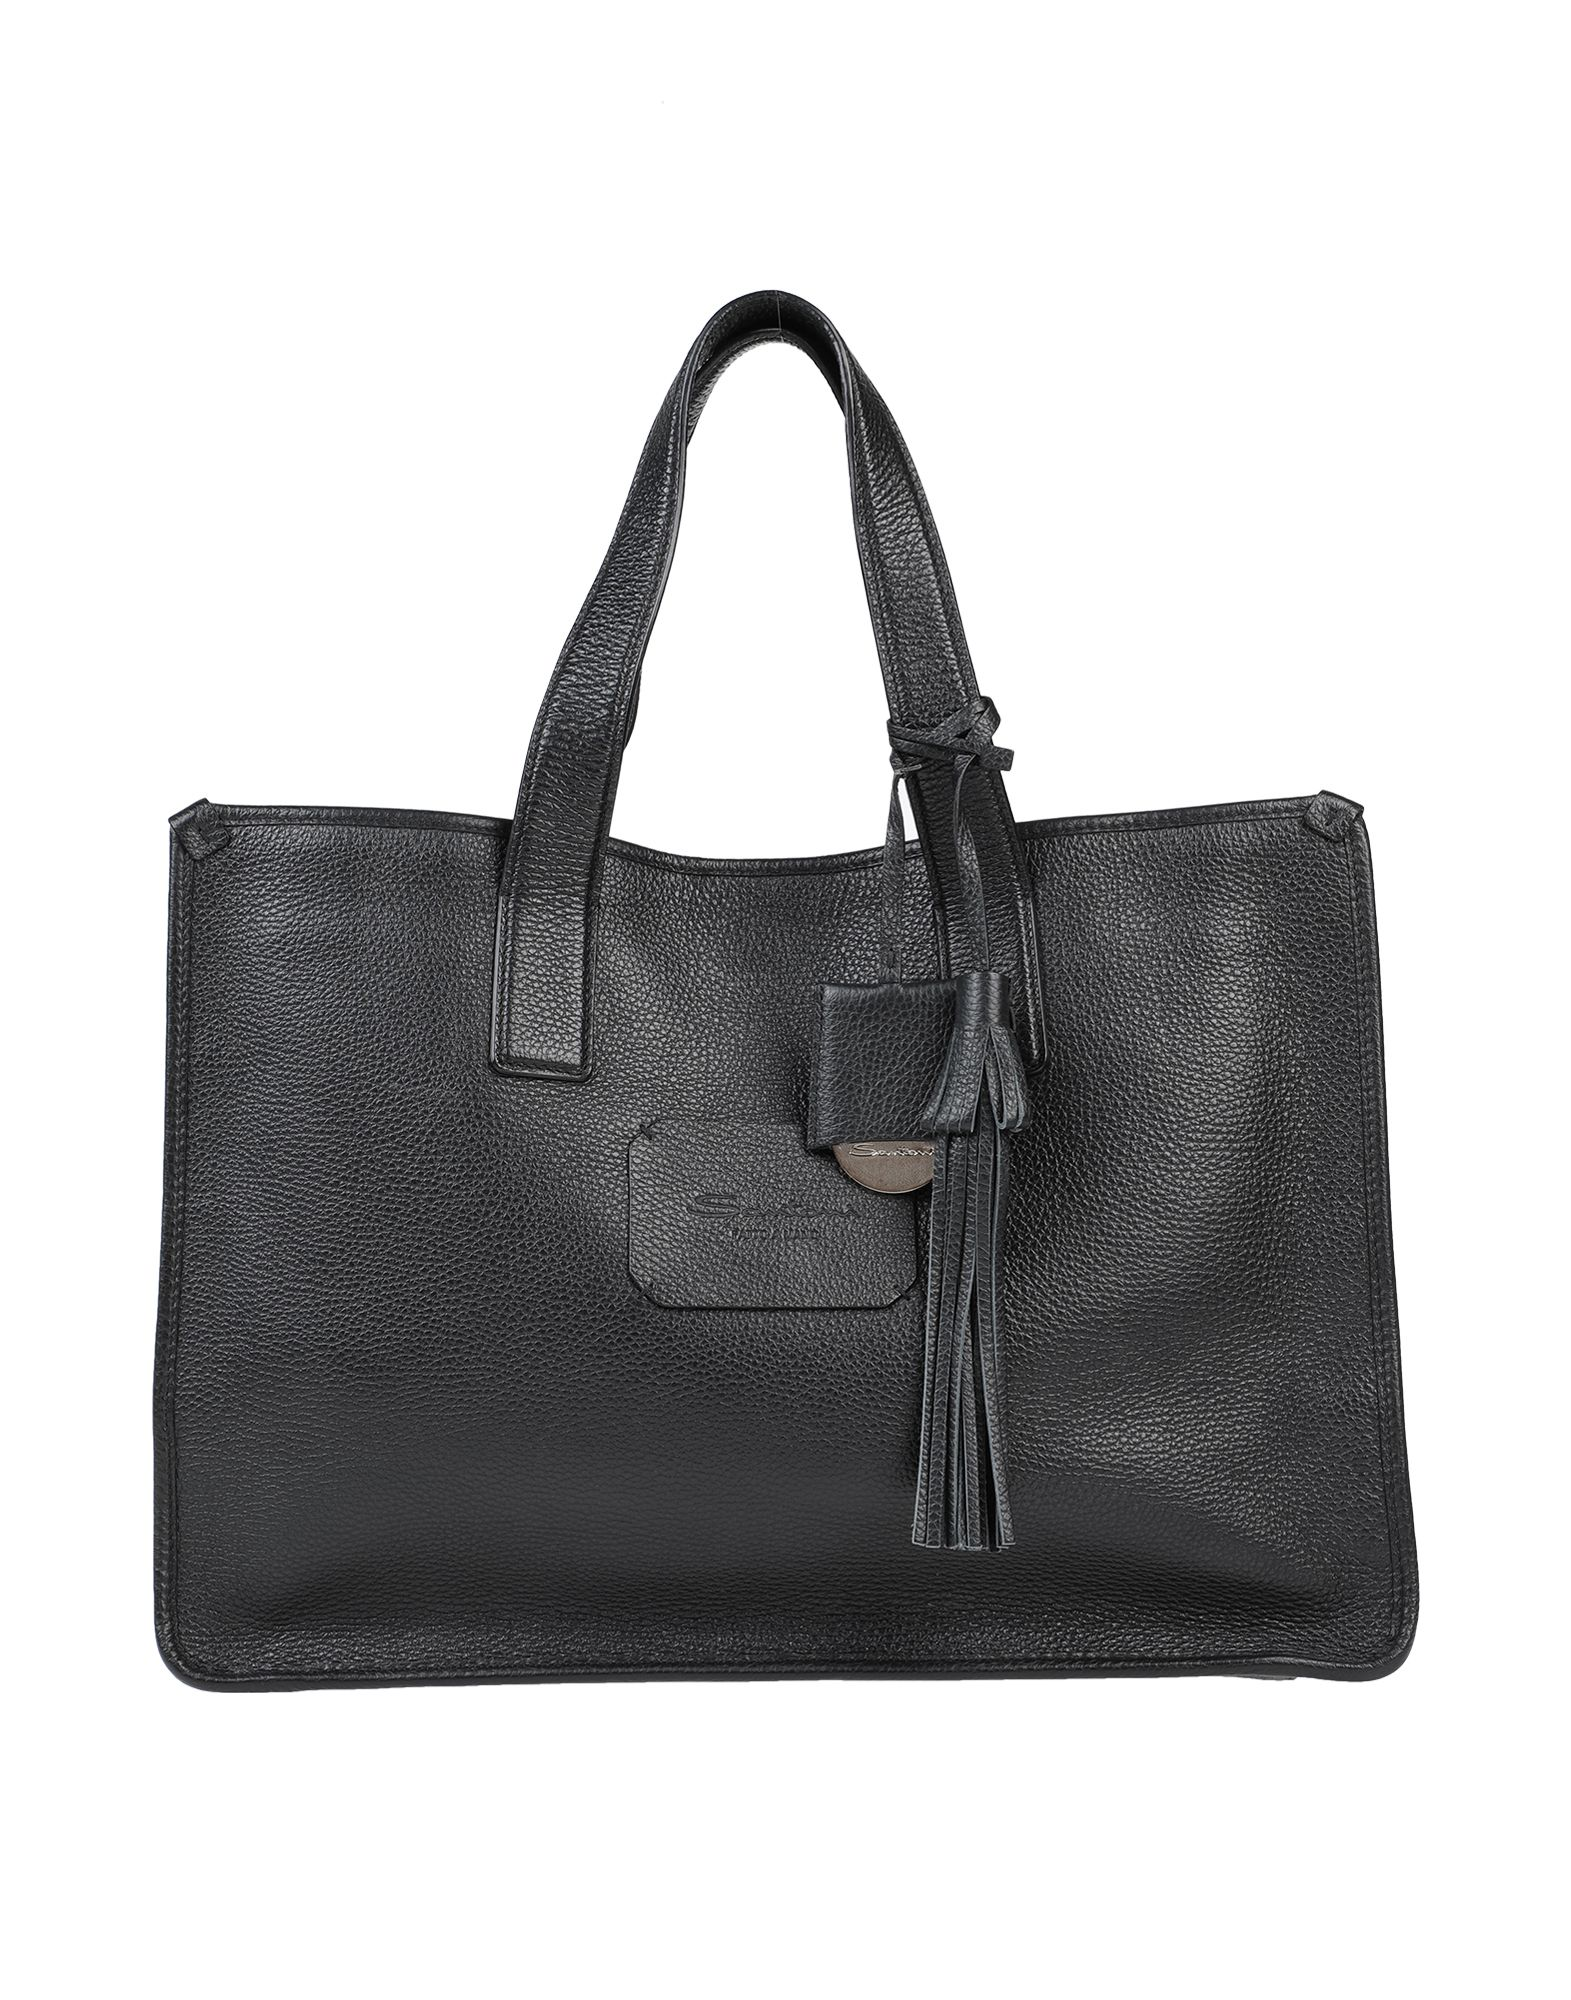 SANTONI Handbags. maxi, textured leather, tassels, logo, solid color, magnetic fastening, double handle, fully lined, contains non-textile parts of animal origin. Soft Leather